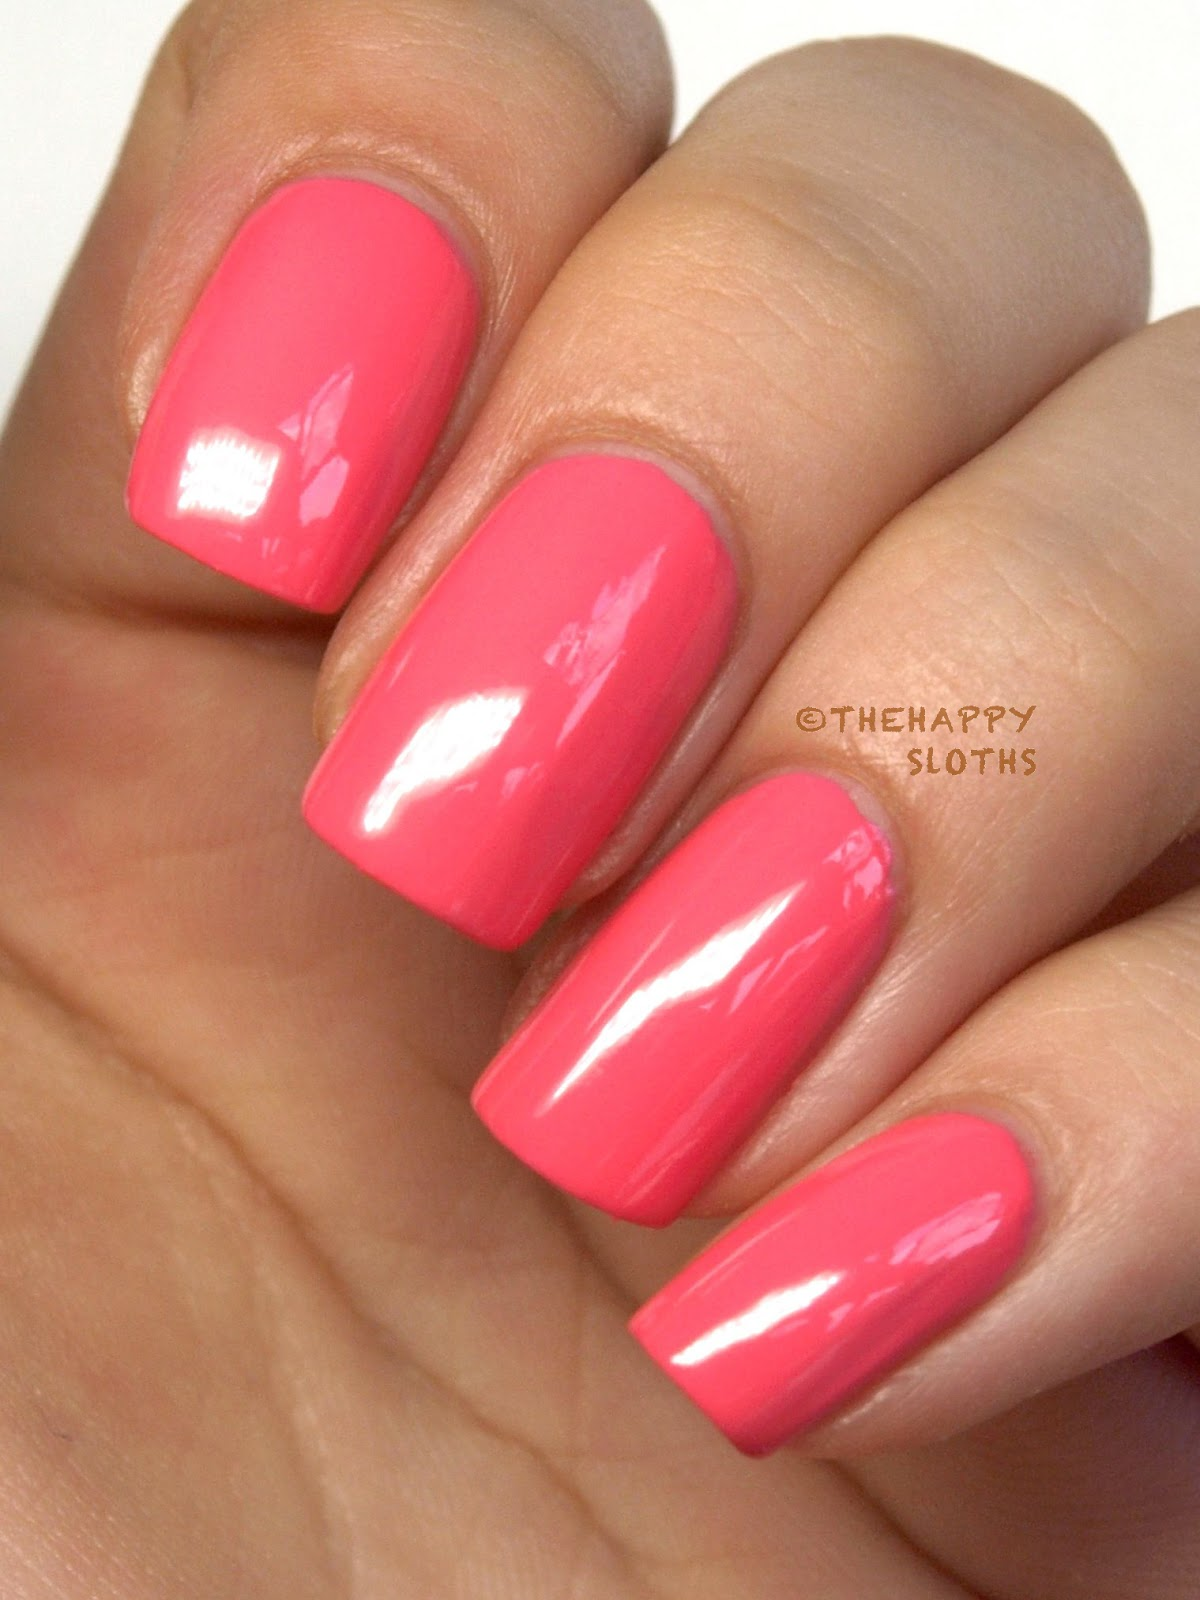 Nicole by OPI Seize the Day Summer 2014 Leapink for Joy Review Swatch